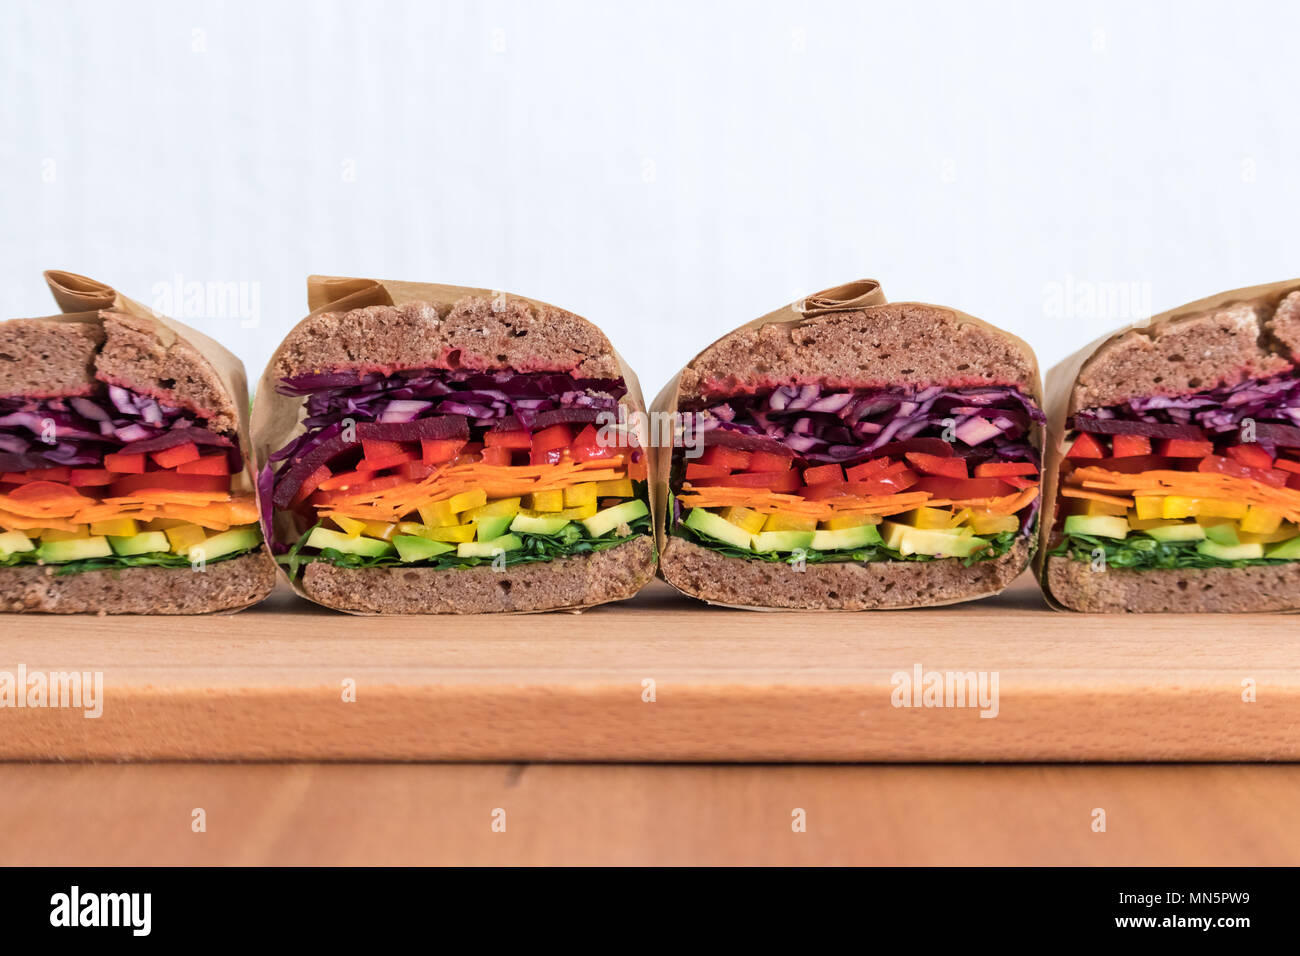 Rainbow salad sandwiches with homemade buckwheat bread, displayed on a wooden board. This fresh healthy lunch is low calorie, dairy free & gluten free. - Stock Image